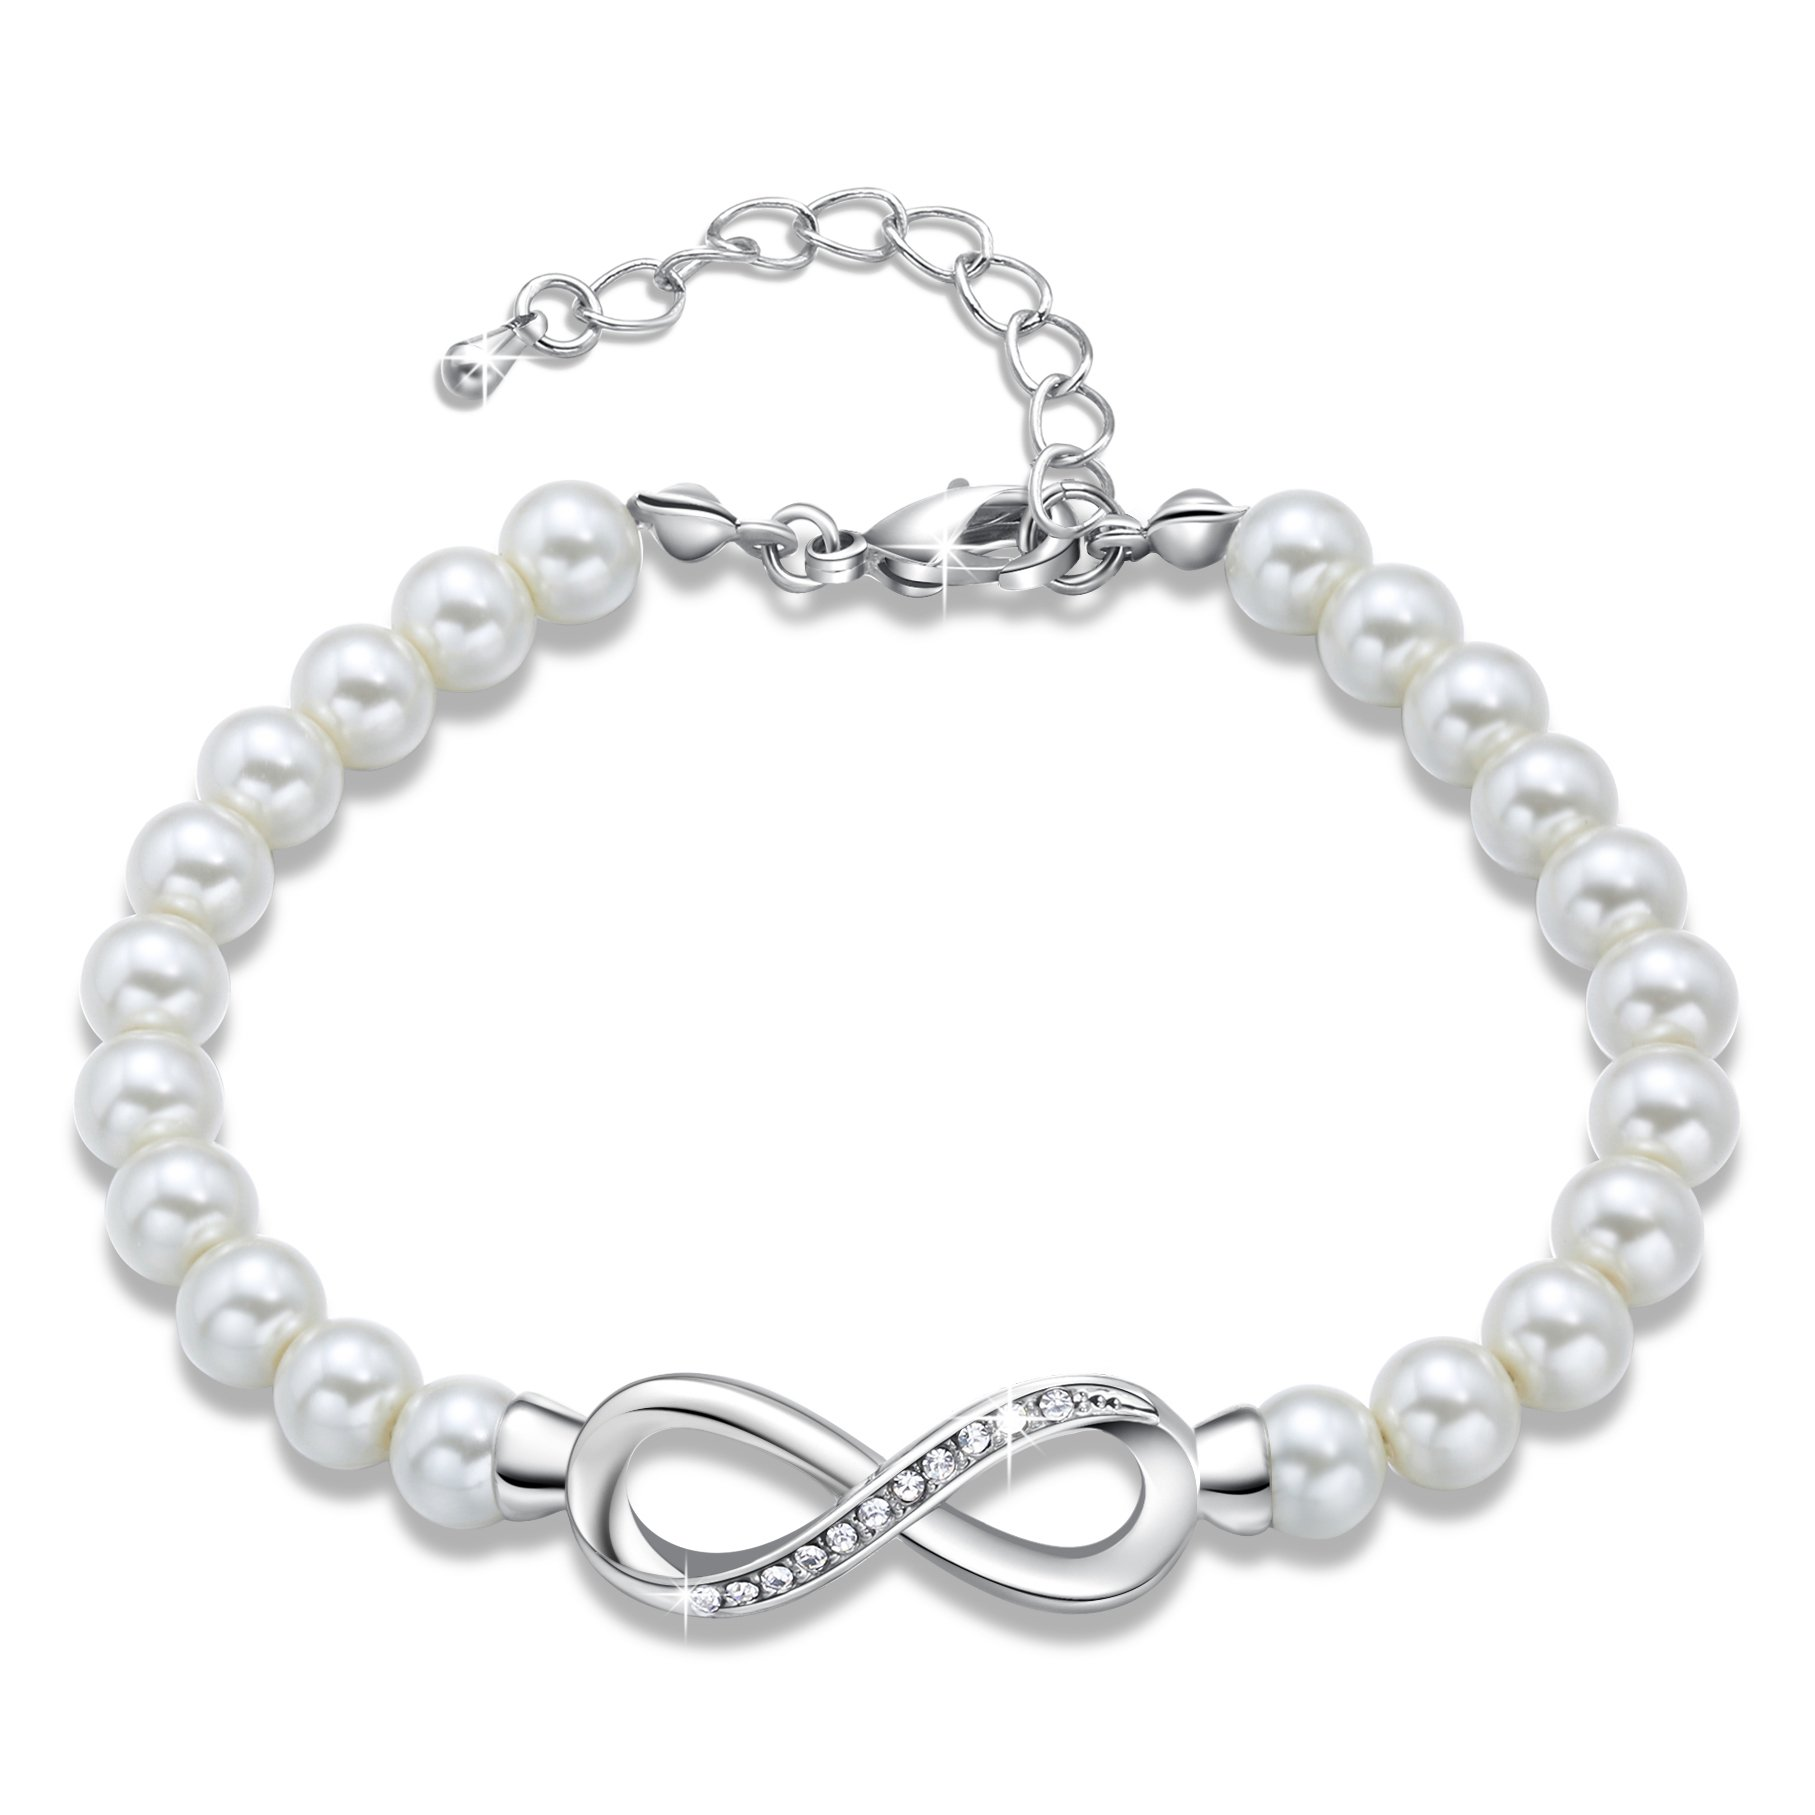 GEORGE · SMITH ''Forever Elegance''Adjustable Infinity White Pearl Bracelet for Mom Wife Grandma Wedding Anniversary Crystals Jewelry Bridesmaids Bridal Collection with Luxury Gift Box